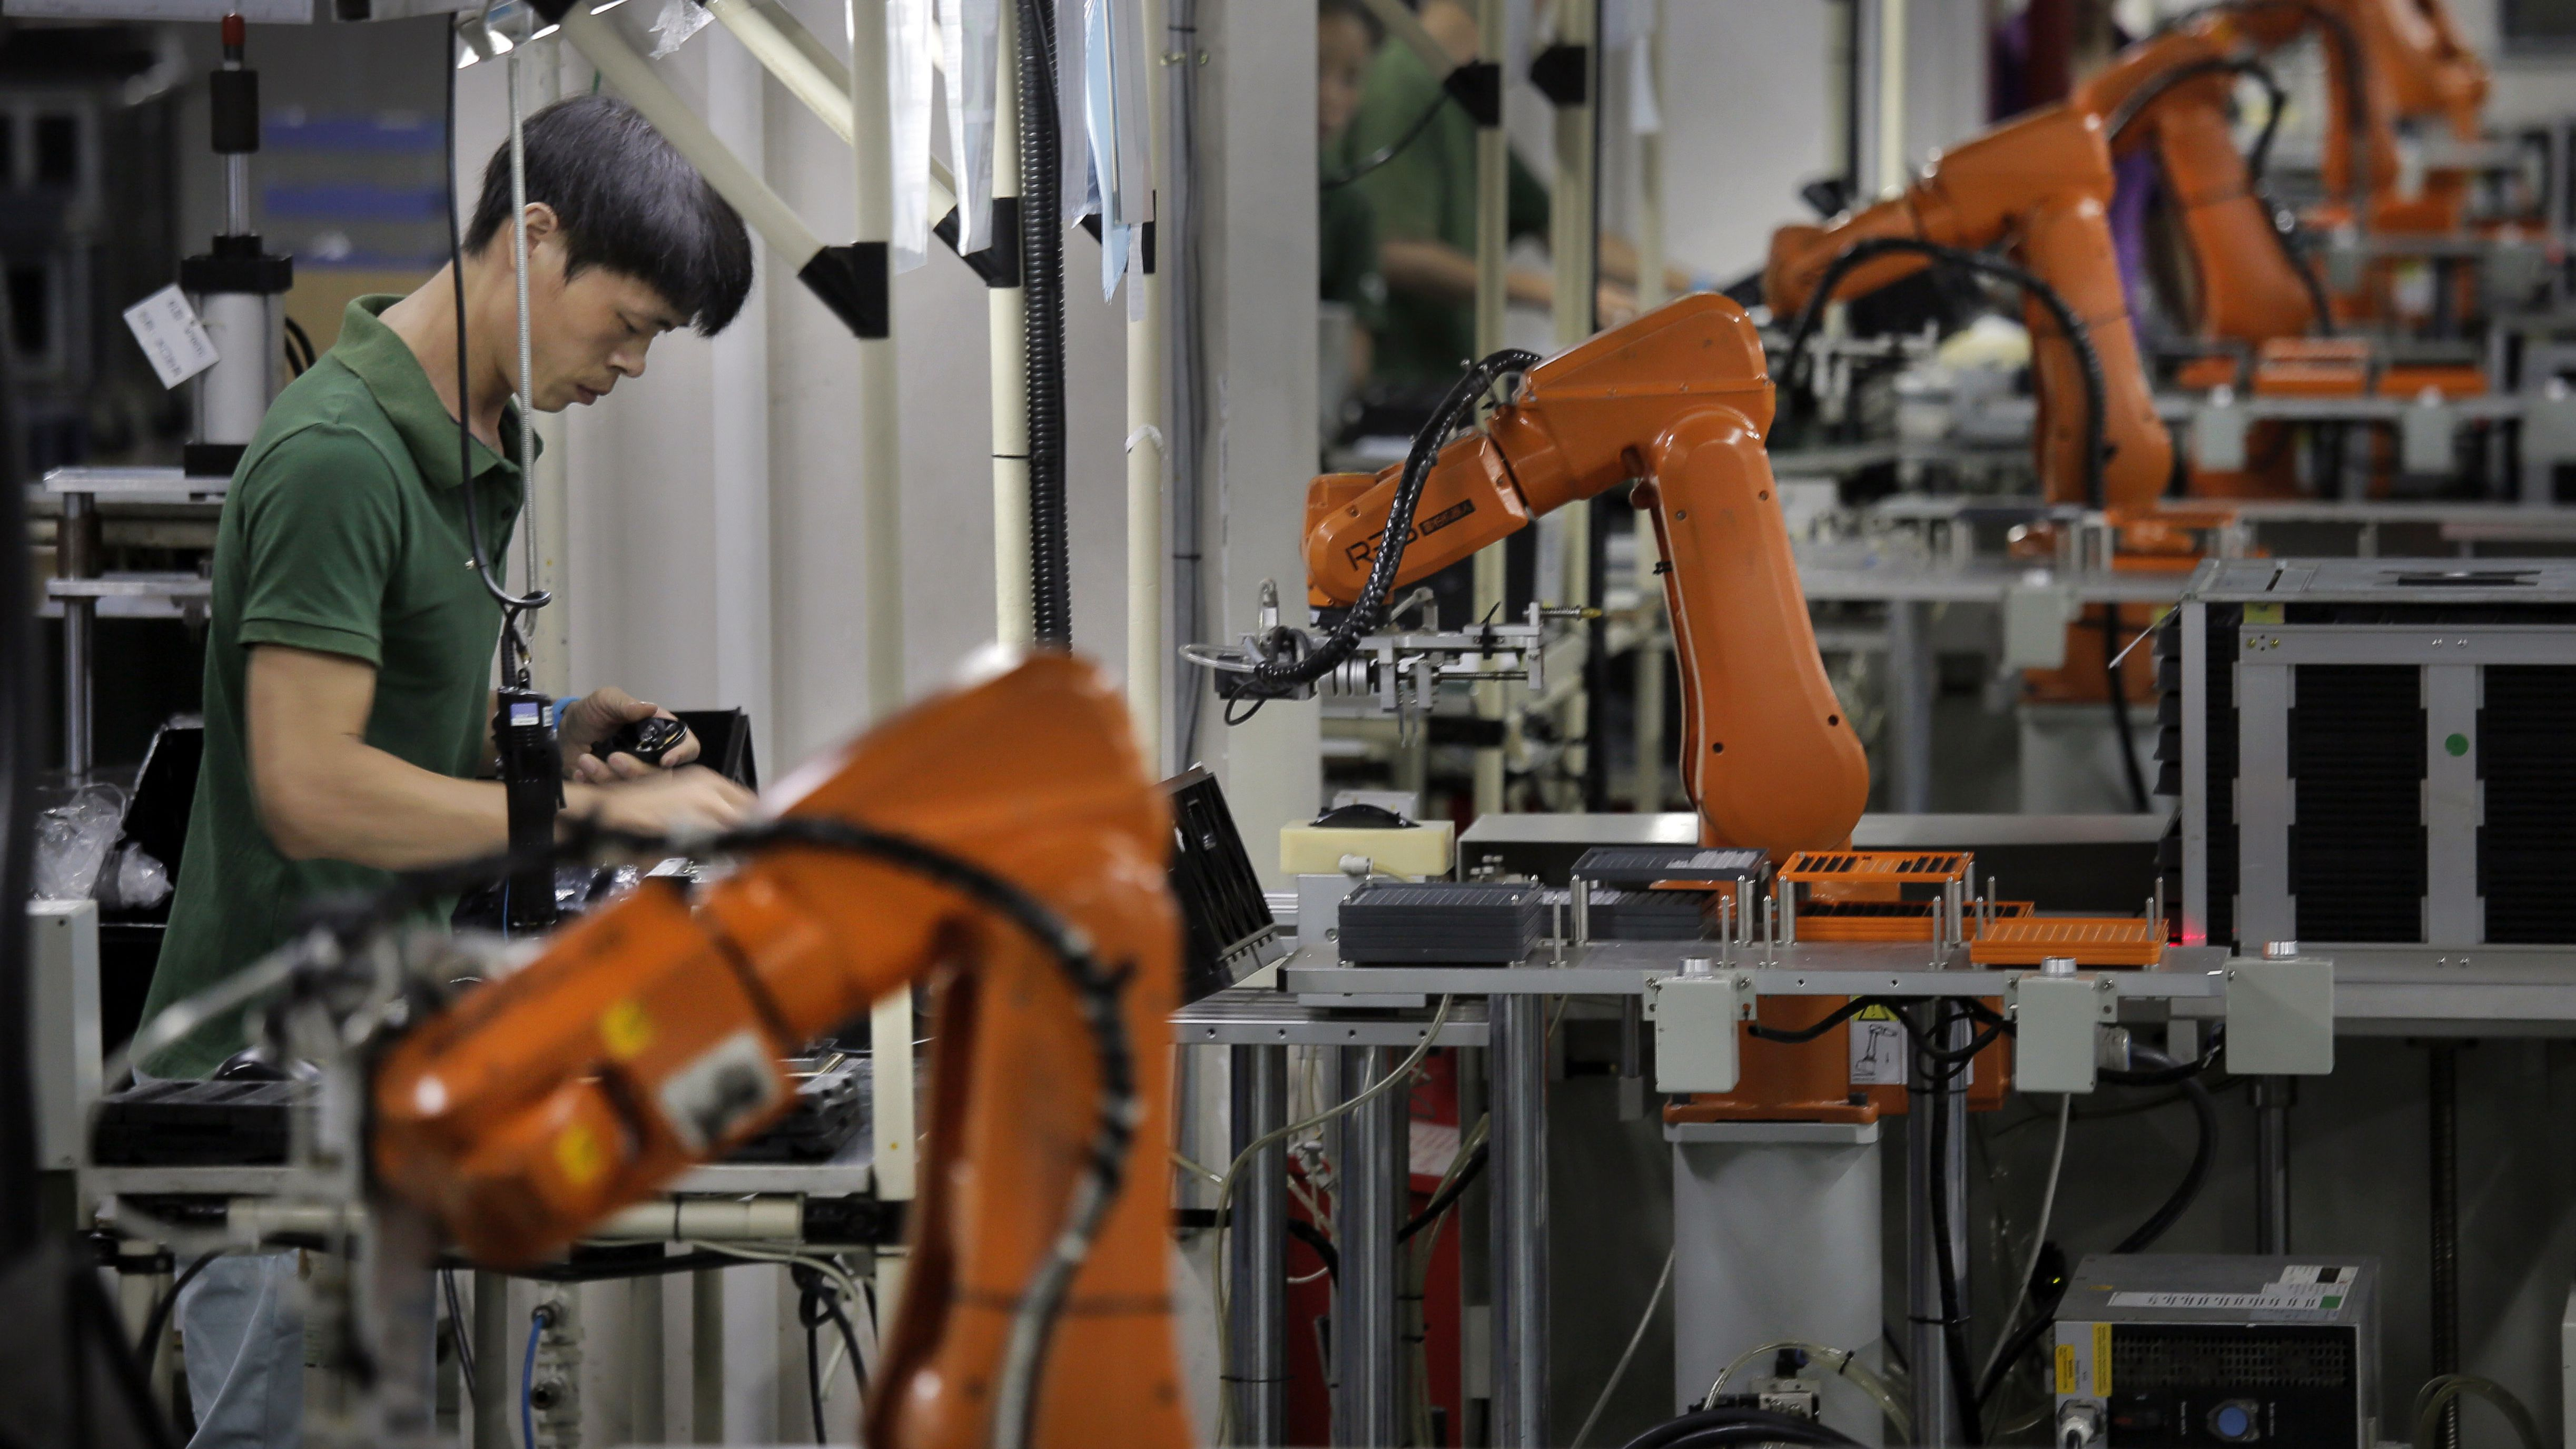 In this Aug. 21, 2015 photo, a Chinese man works next to some orange robot arms at Rapoo Technology factory in southern Chinese industrial boomtown of Shenzhen. Factories in China are rapidly replacing those workers with automation, a pivot that's encouraged by rising wages and new official directives aimed at helping the country move away from low-cost manufacturing as the supply of young, pliant workers shrinks. (AP Photo/Vincent Yu)